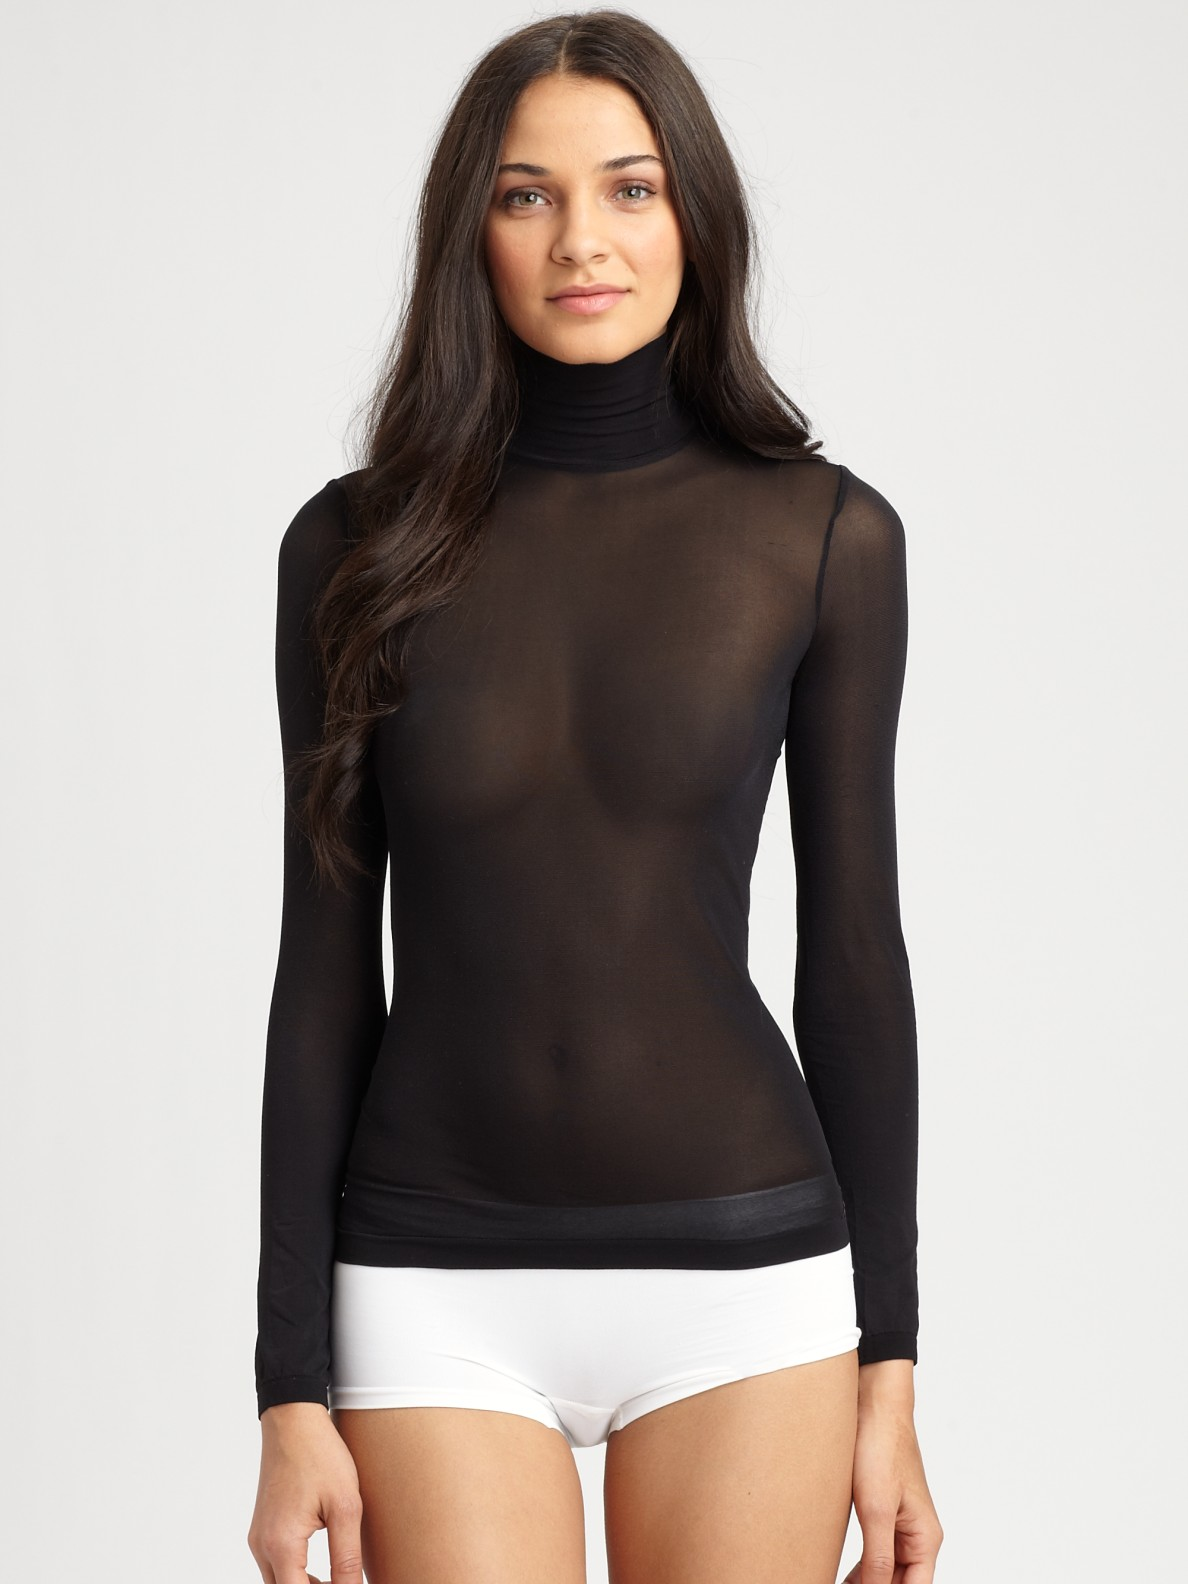 Would You Wear... a Turtleneck?